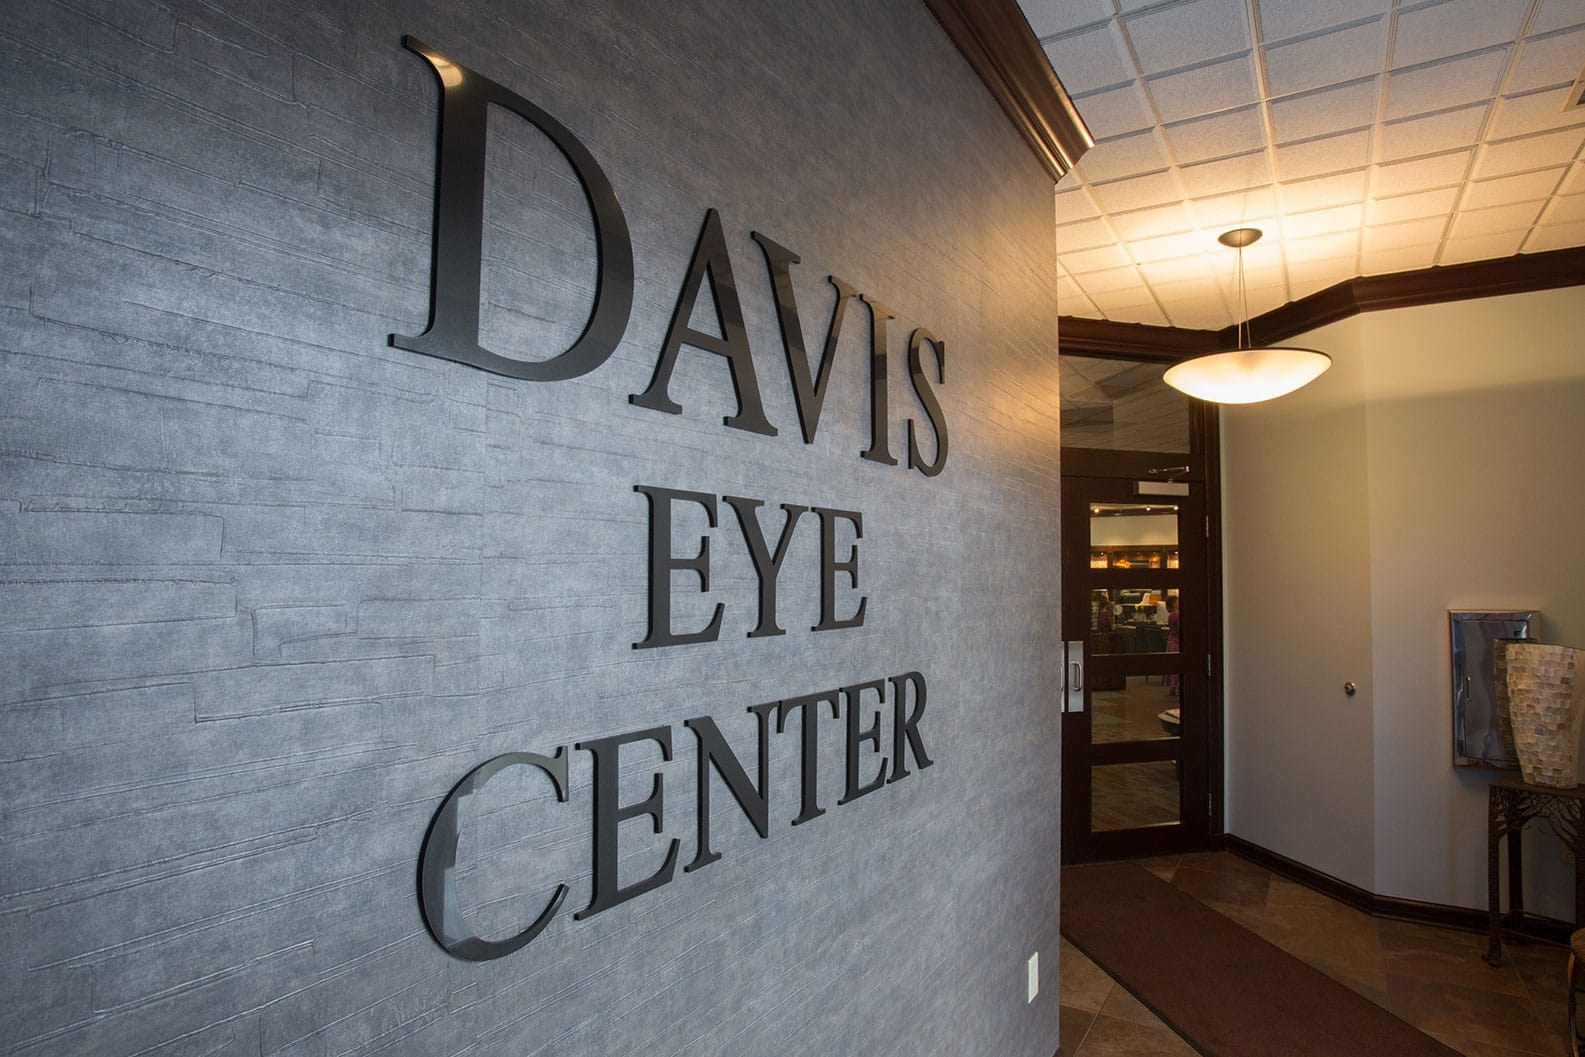 davis eye center sign